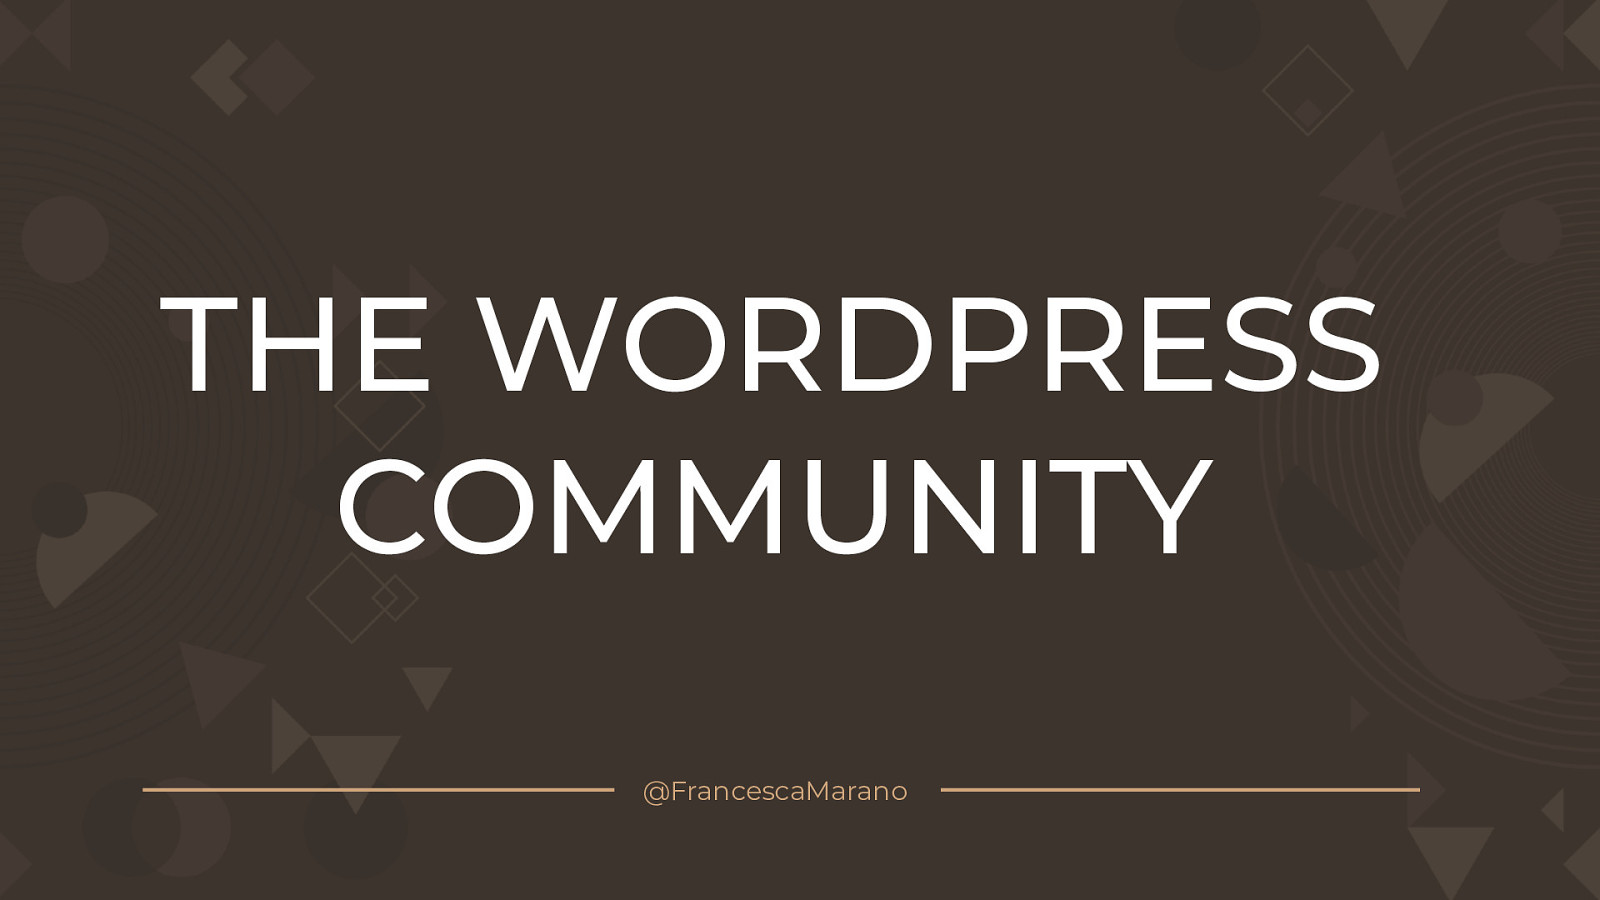 The WordPress Community